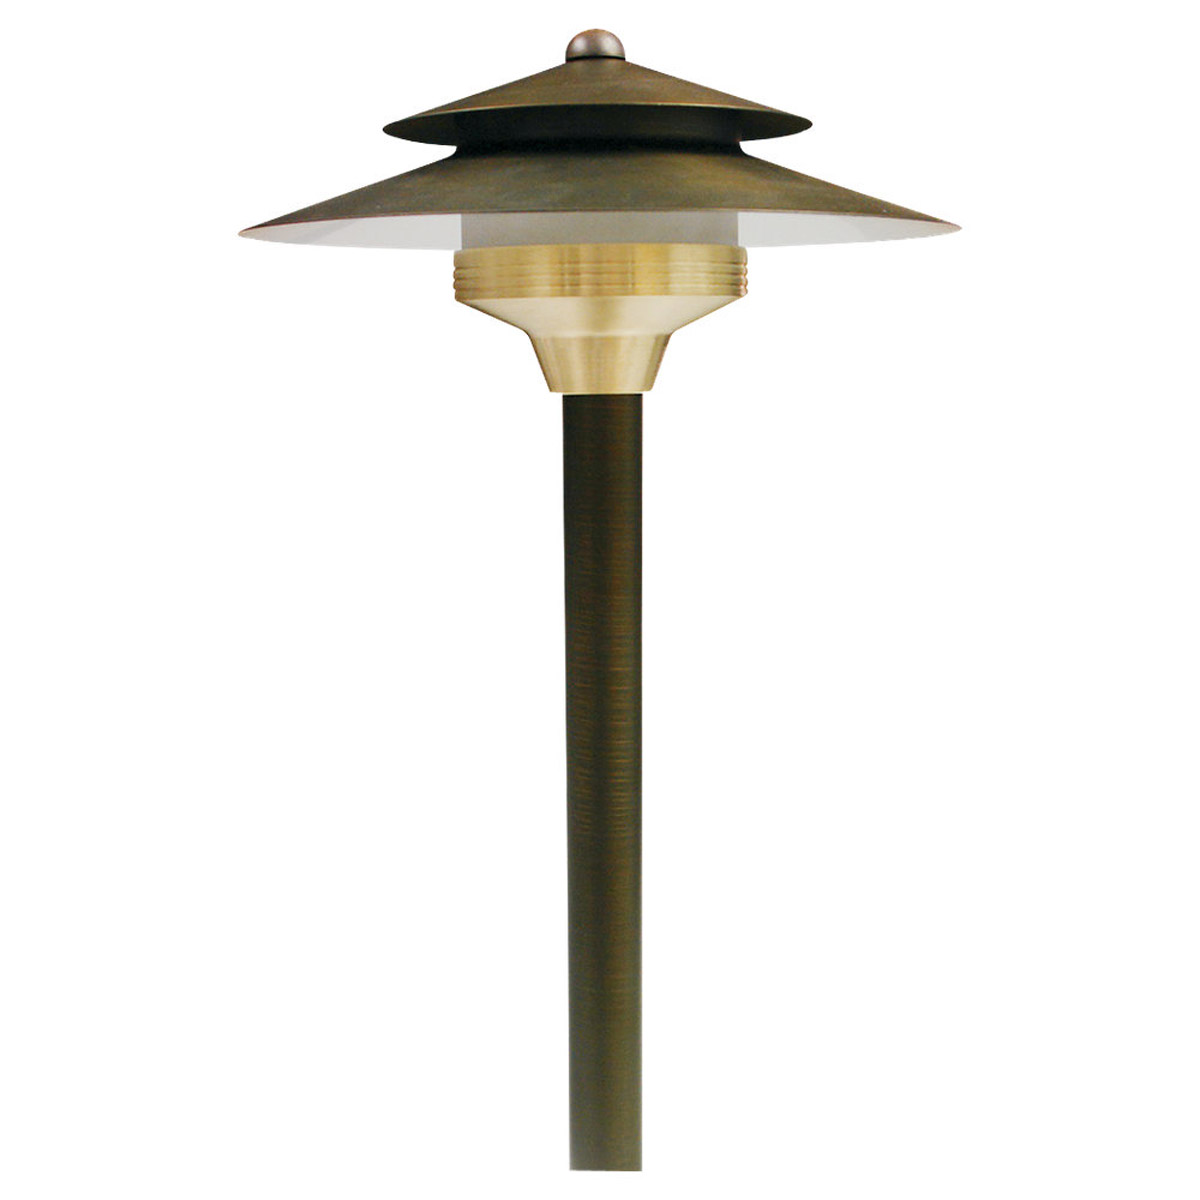 Sea Gull Lighting Meridian 1 Light Landscape Path Light in Weathered Brass 91189-147 photo